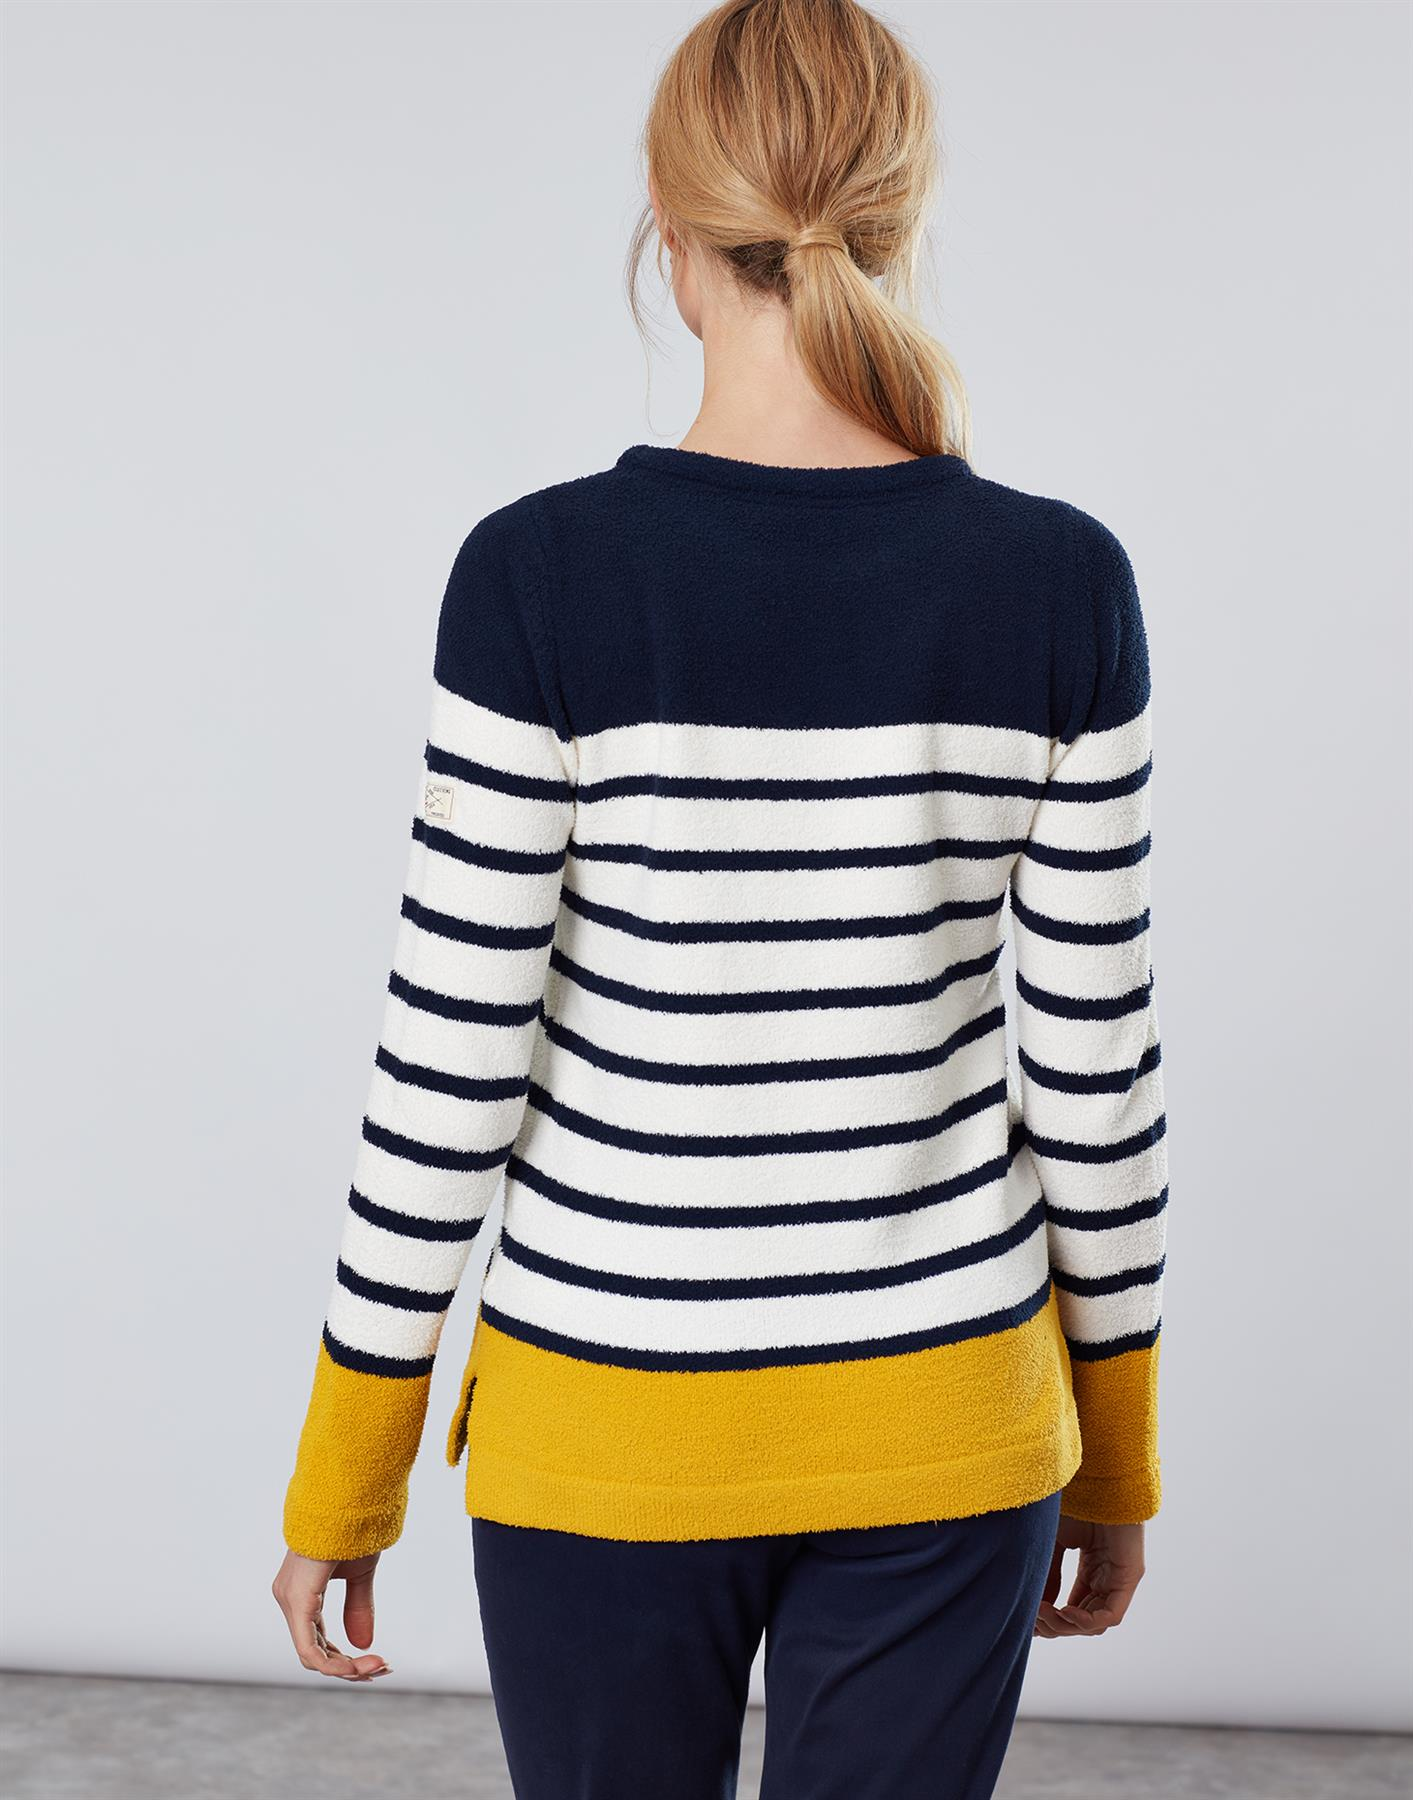 Jersey-De-Chenille-Joules-Para-Mujer-Seaham-Suave-AW19 miniatura 13